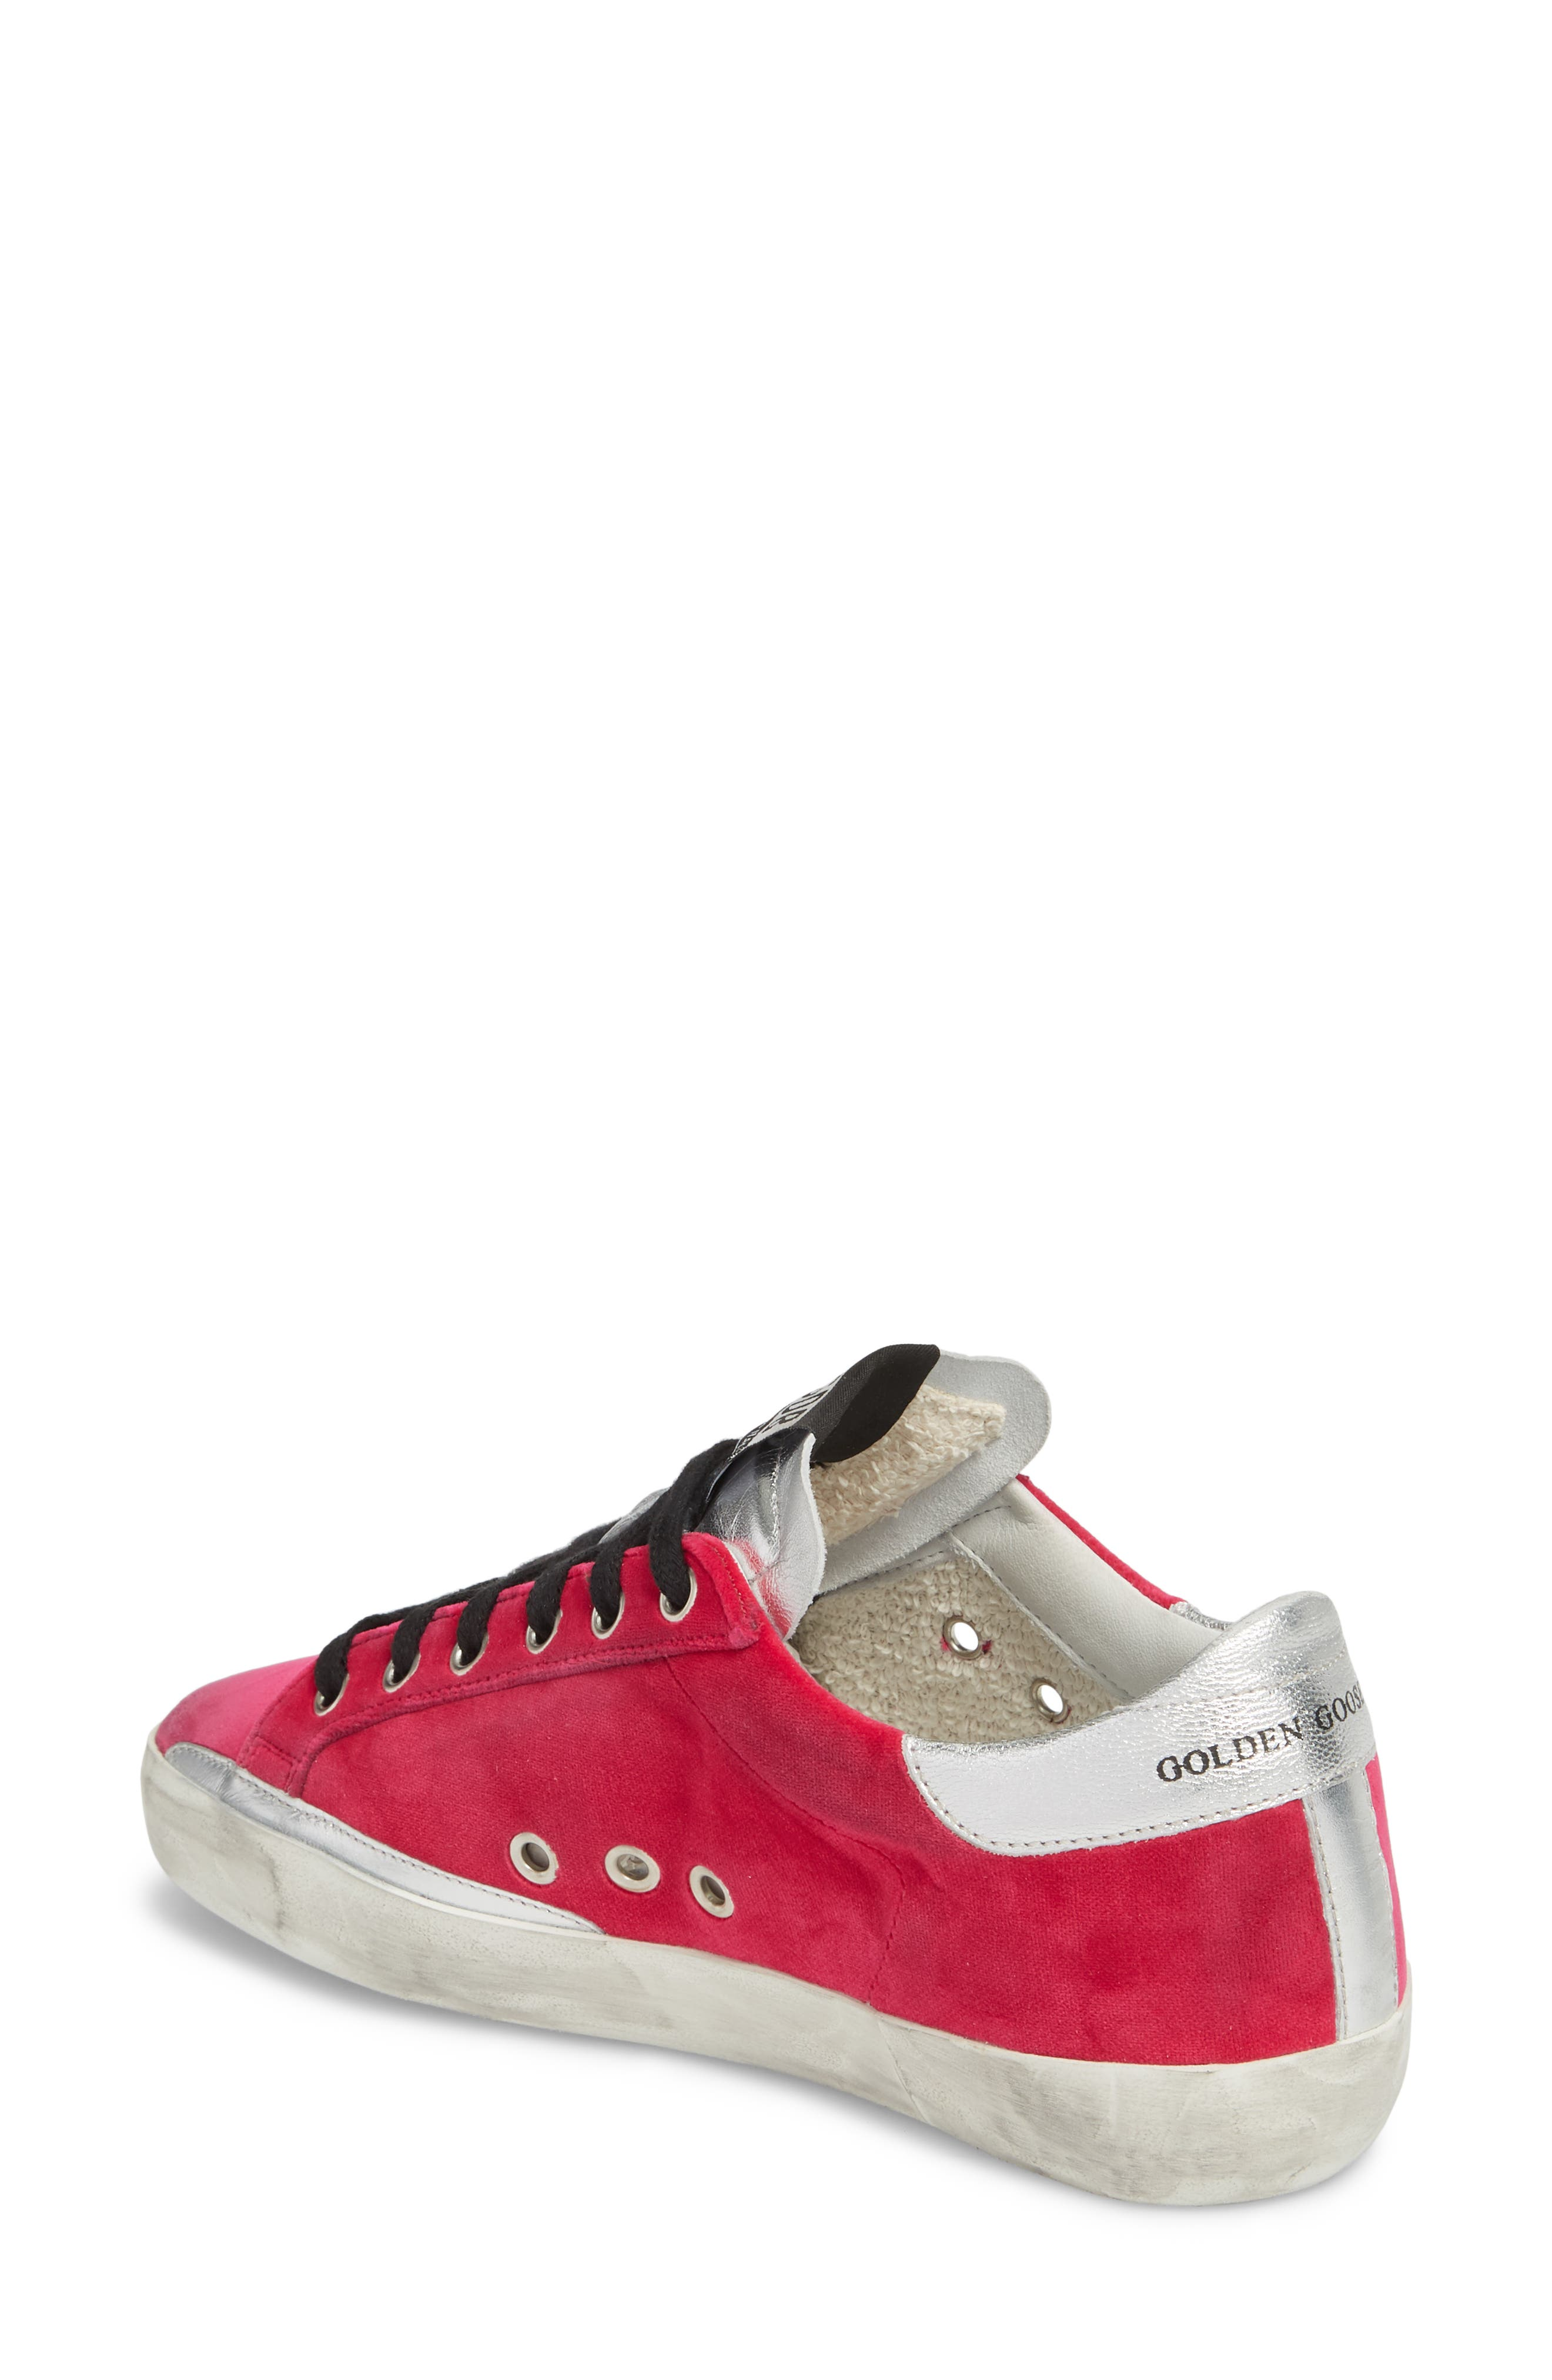 Superstar Low Top Sneaker,                             Alternate thumbnail 2, color,                             FUCHSIA/ BLACK